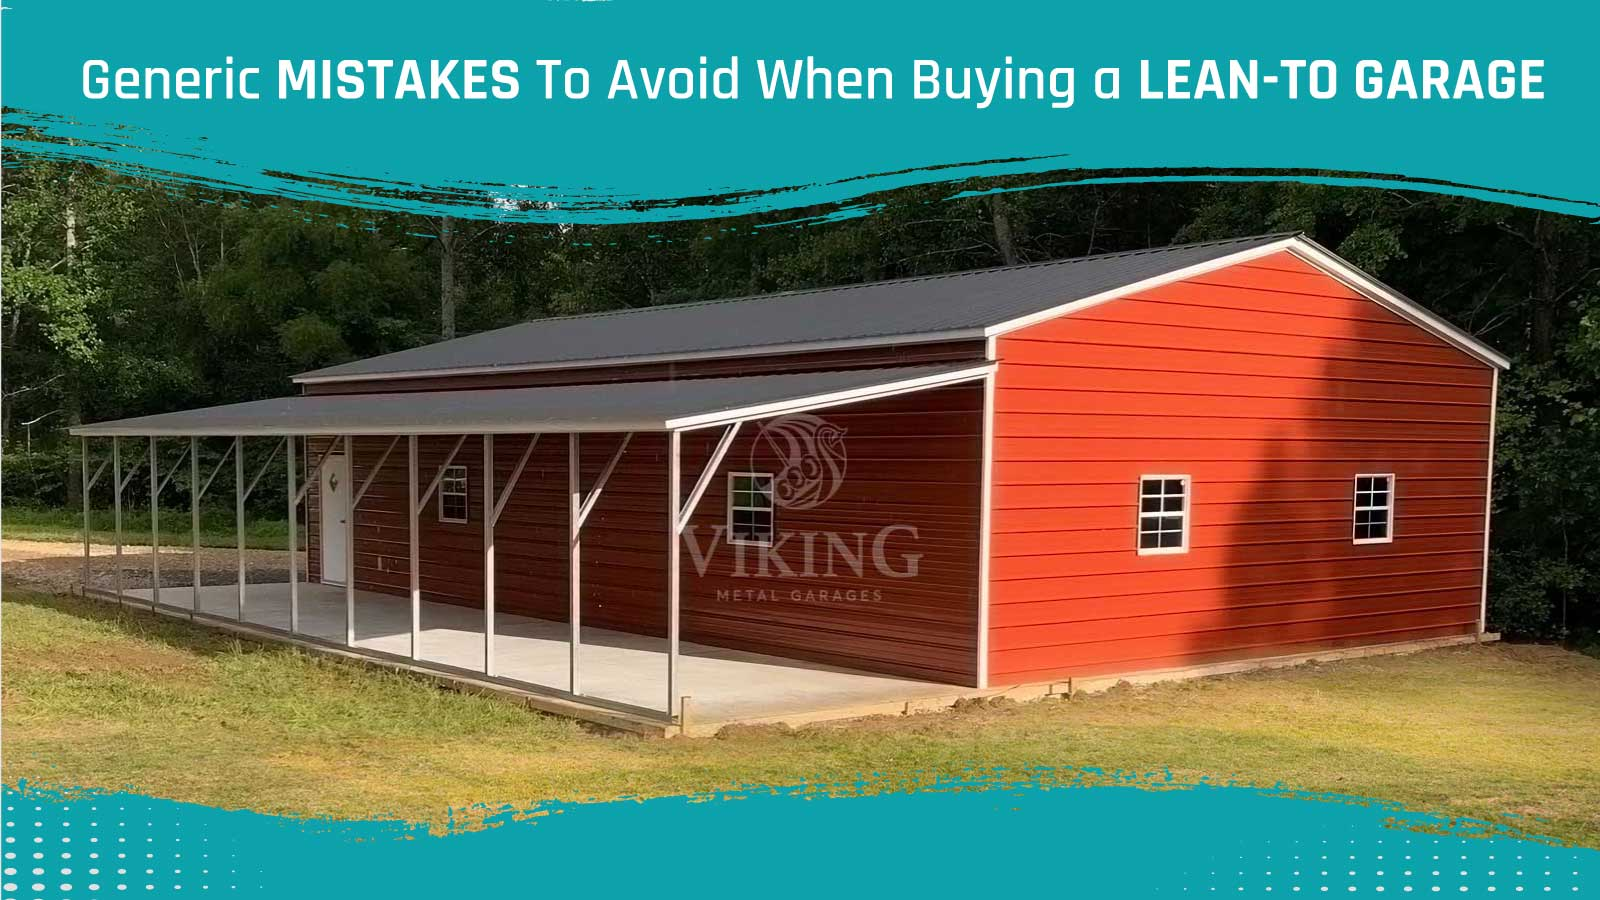 Generic Mistakes To Avoid When Buying a Lean-to Garage